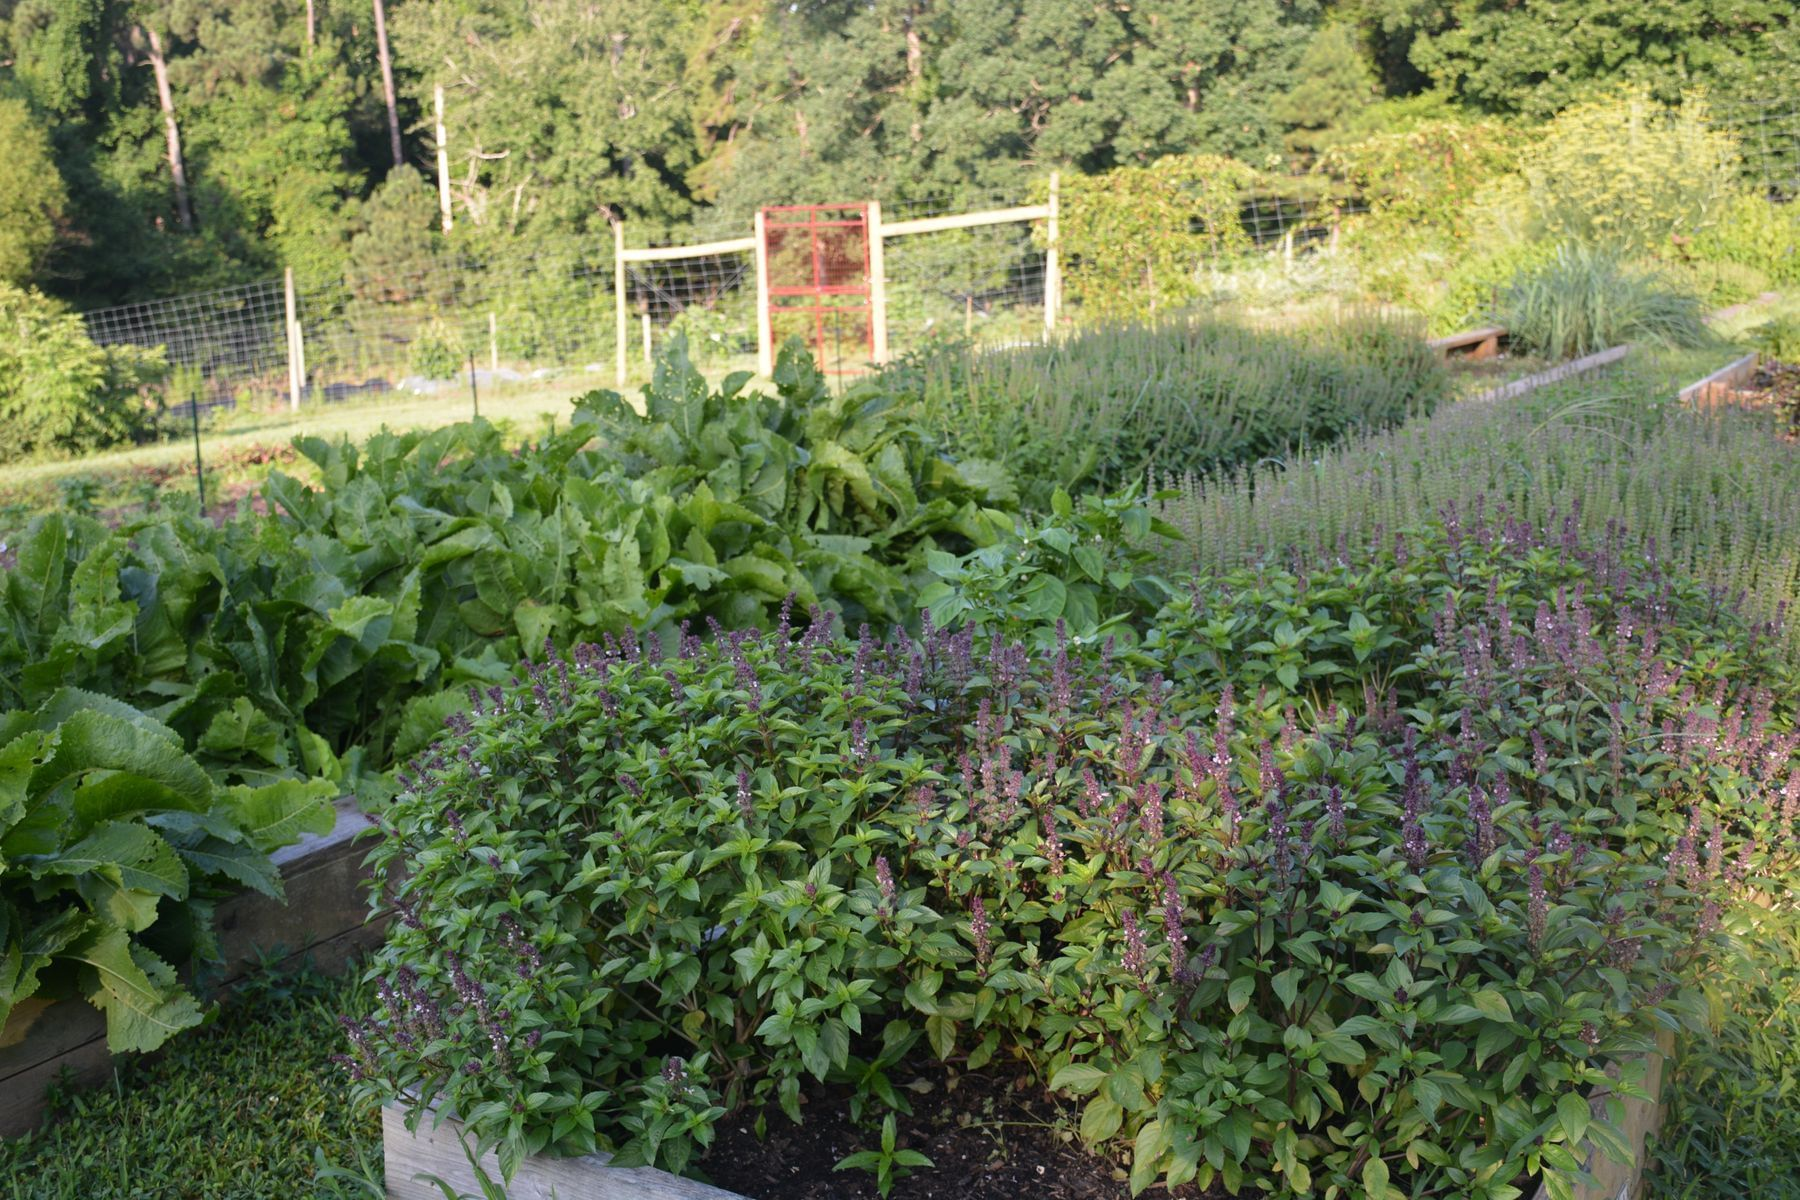 vegetables and flowers in farm